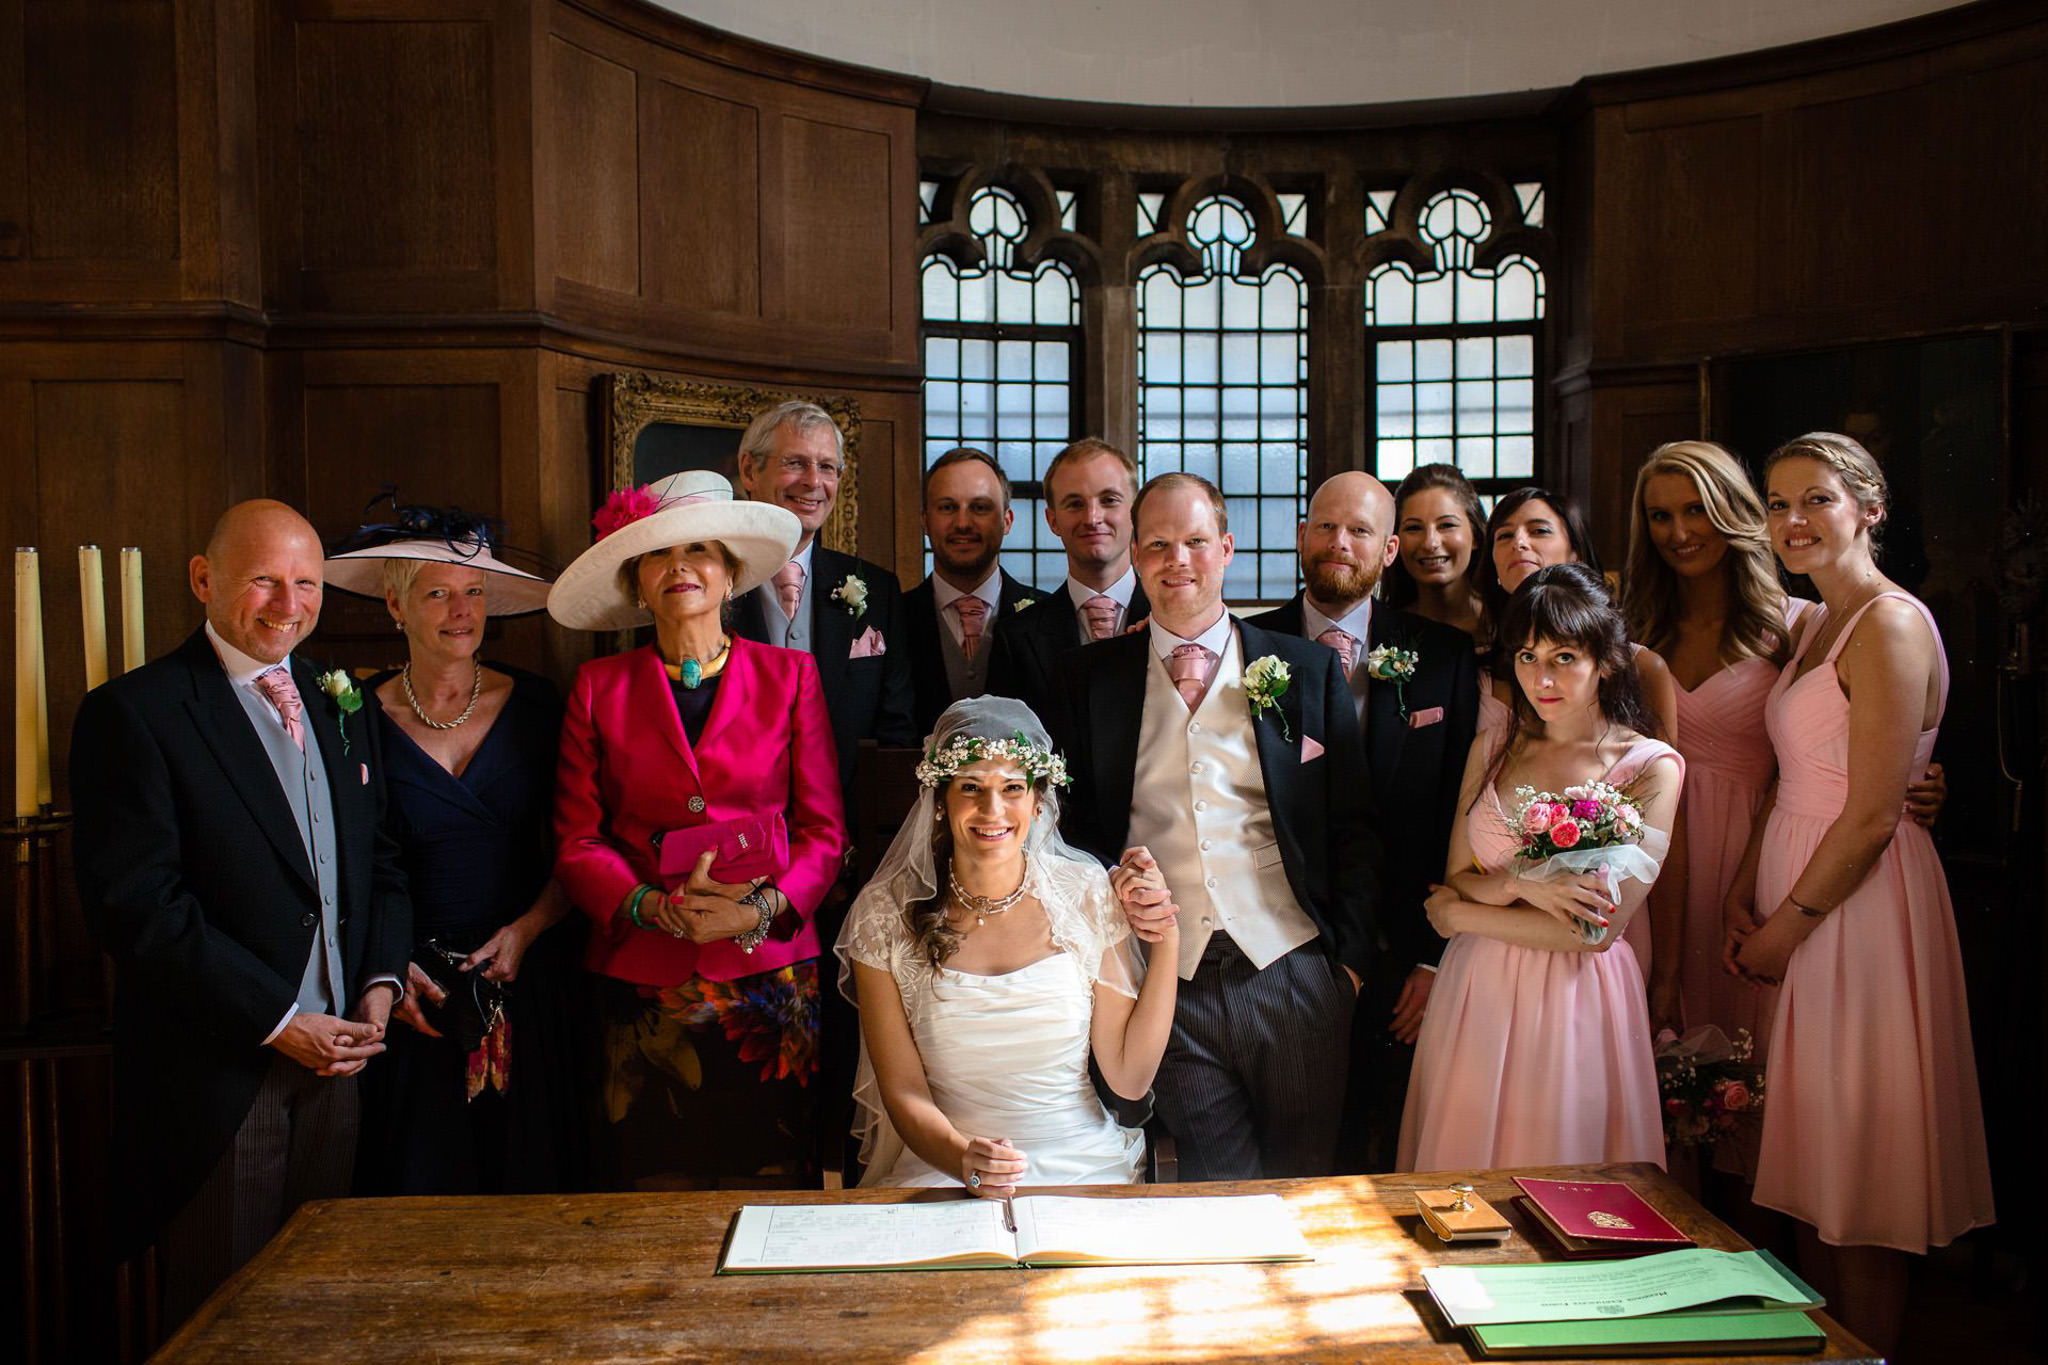 St. Pancras hotel wedding group photo in the chapel